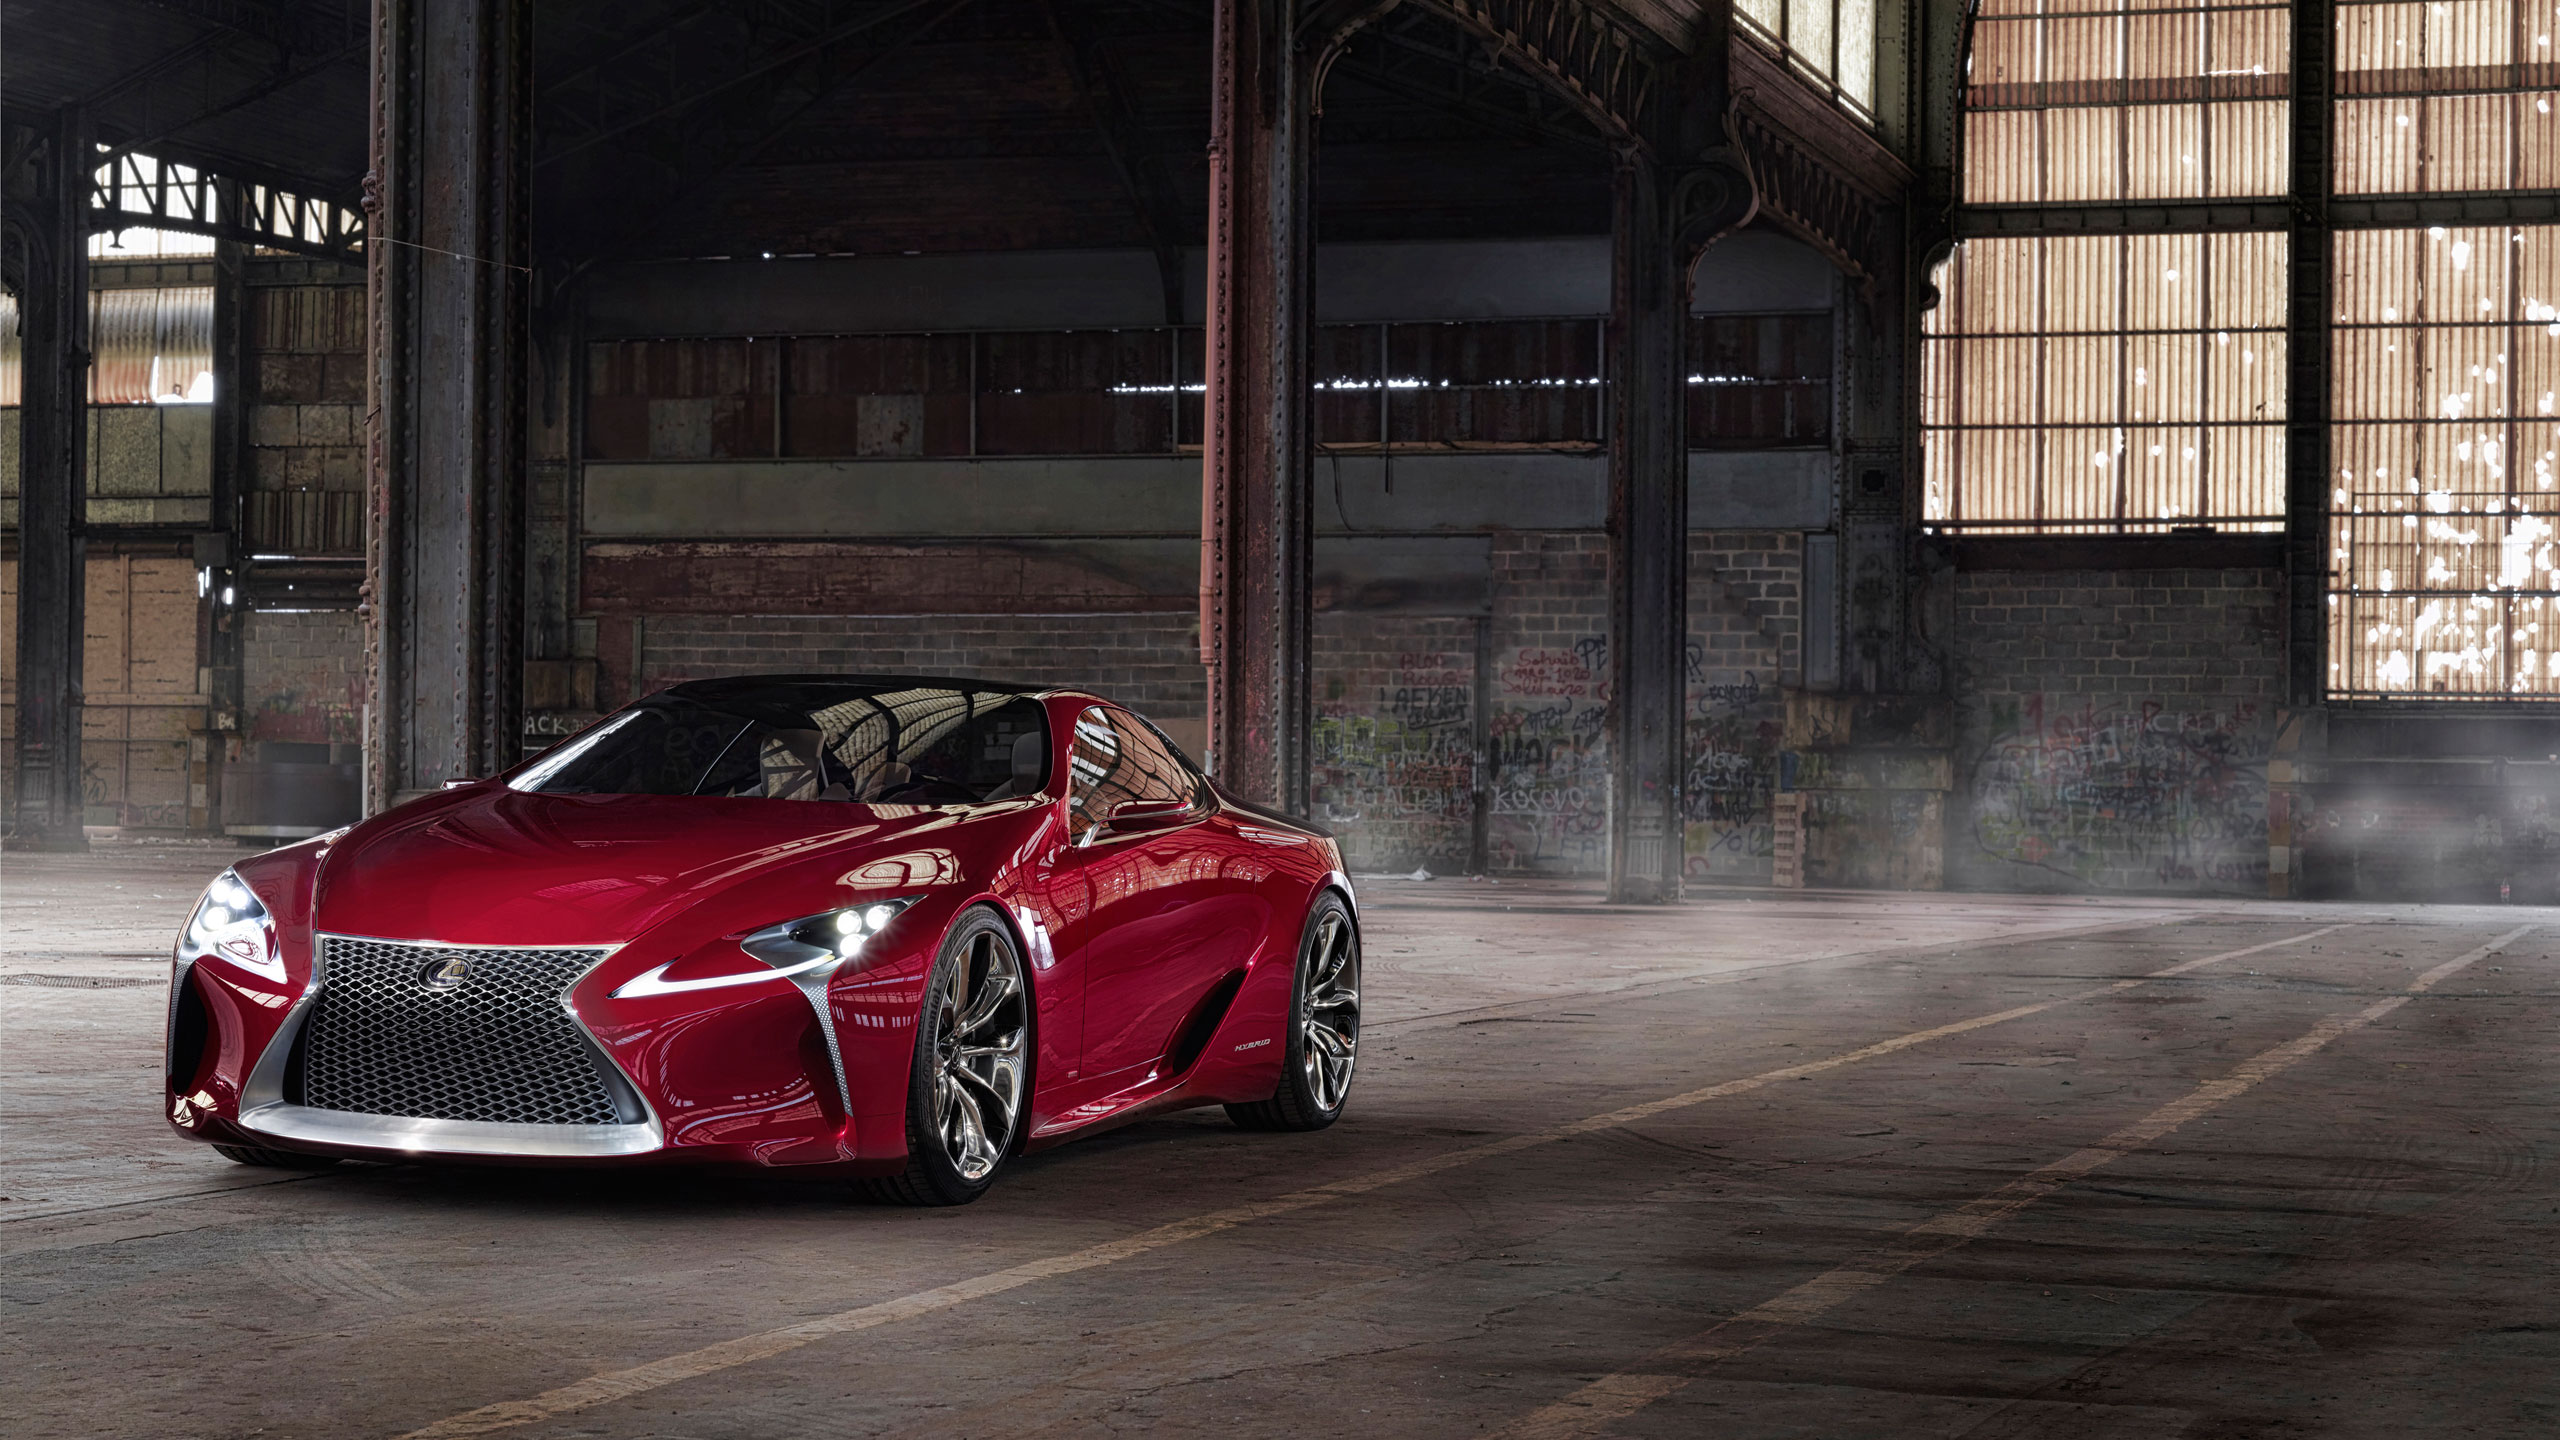 Fantastic Lexus Wallpaper